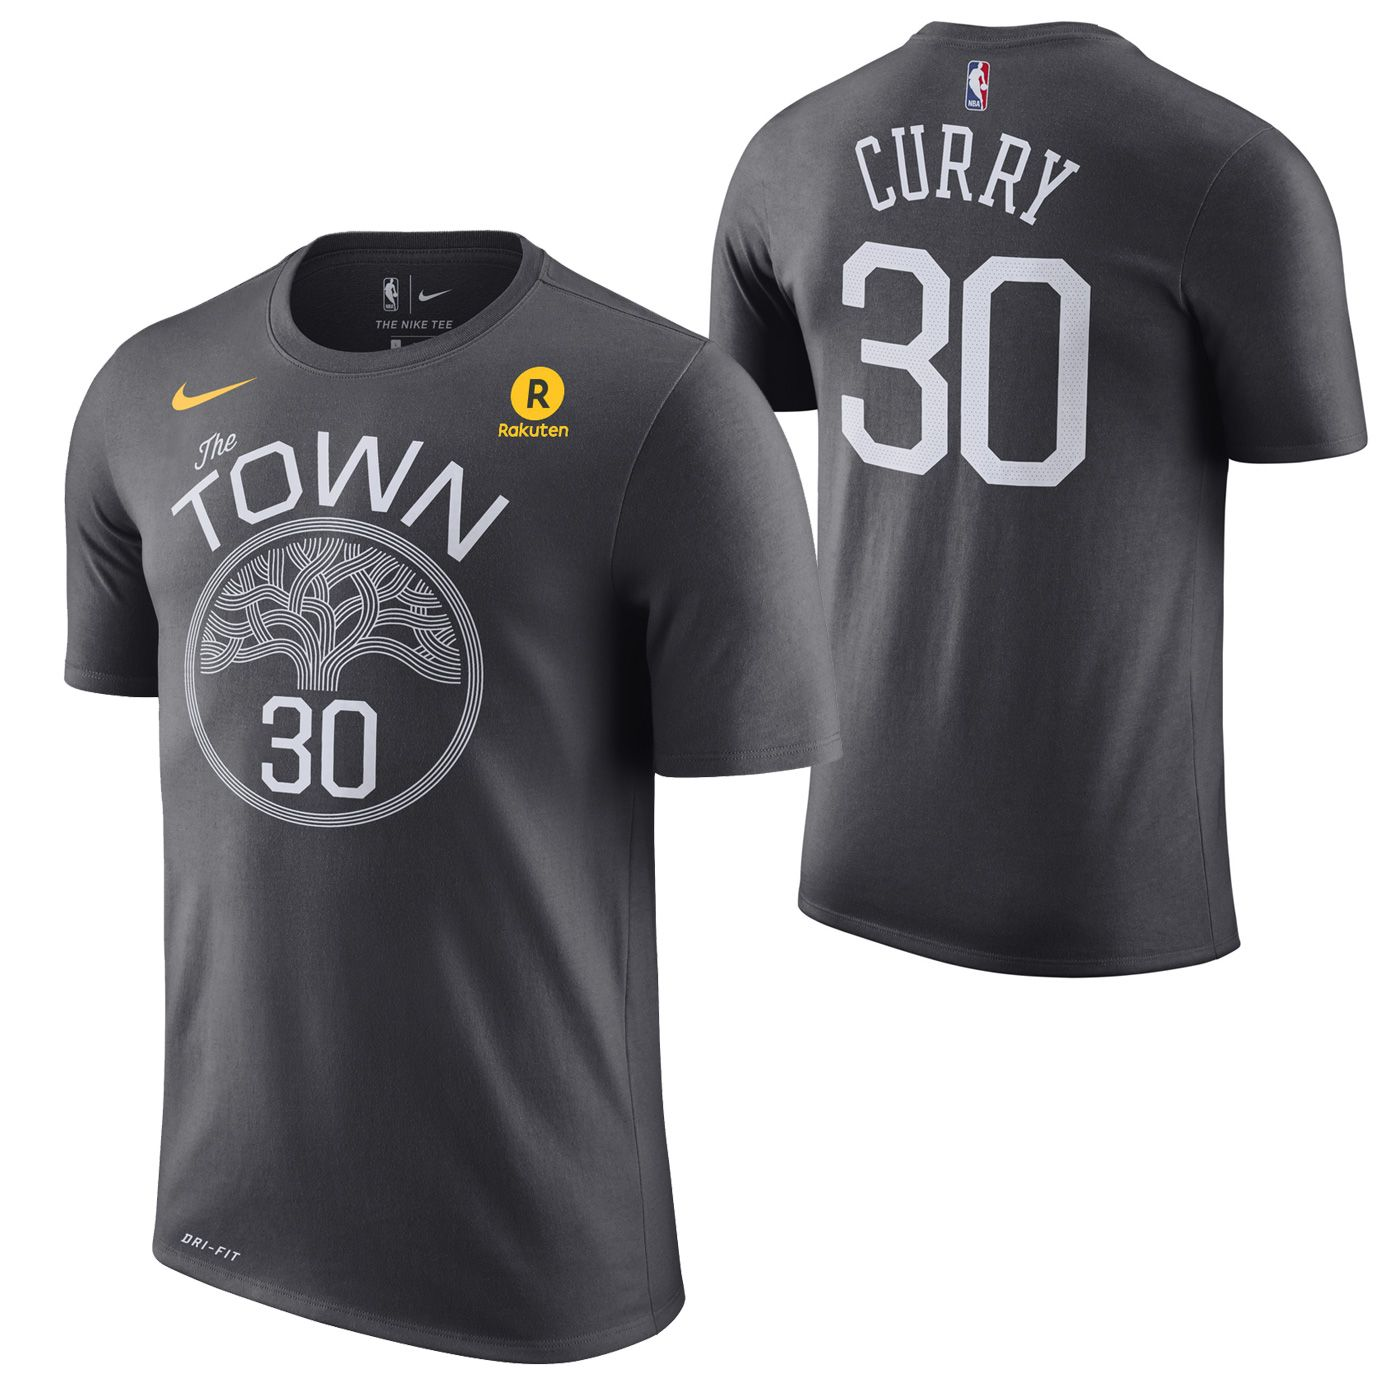 70f531efea4 Golden State Warriors Nike Dri-FIT Men's 'The Town' Stephen Curry #30 Game  Time Name & Number Tee - Grey